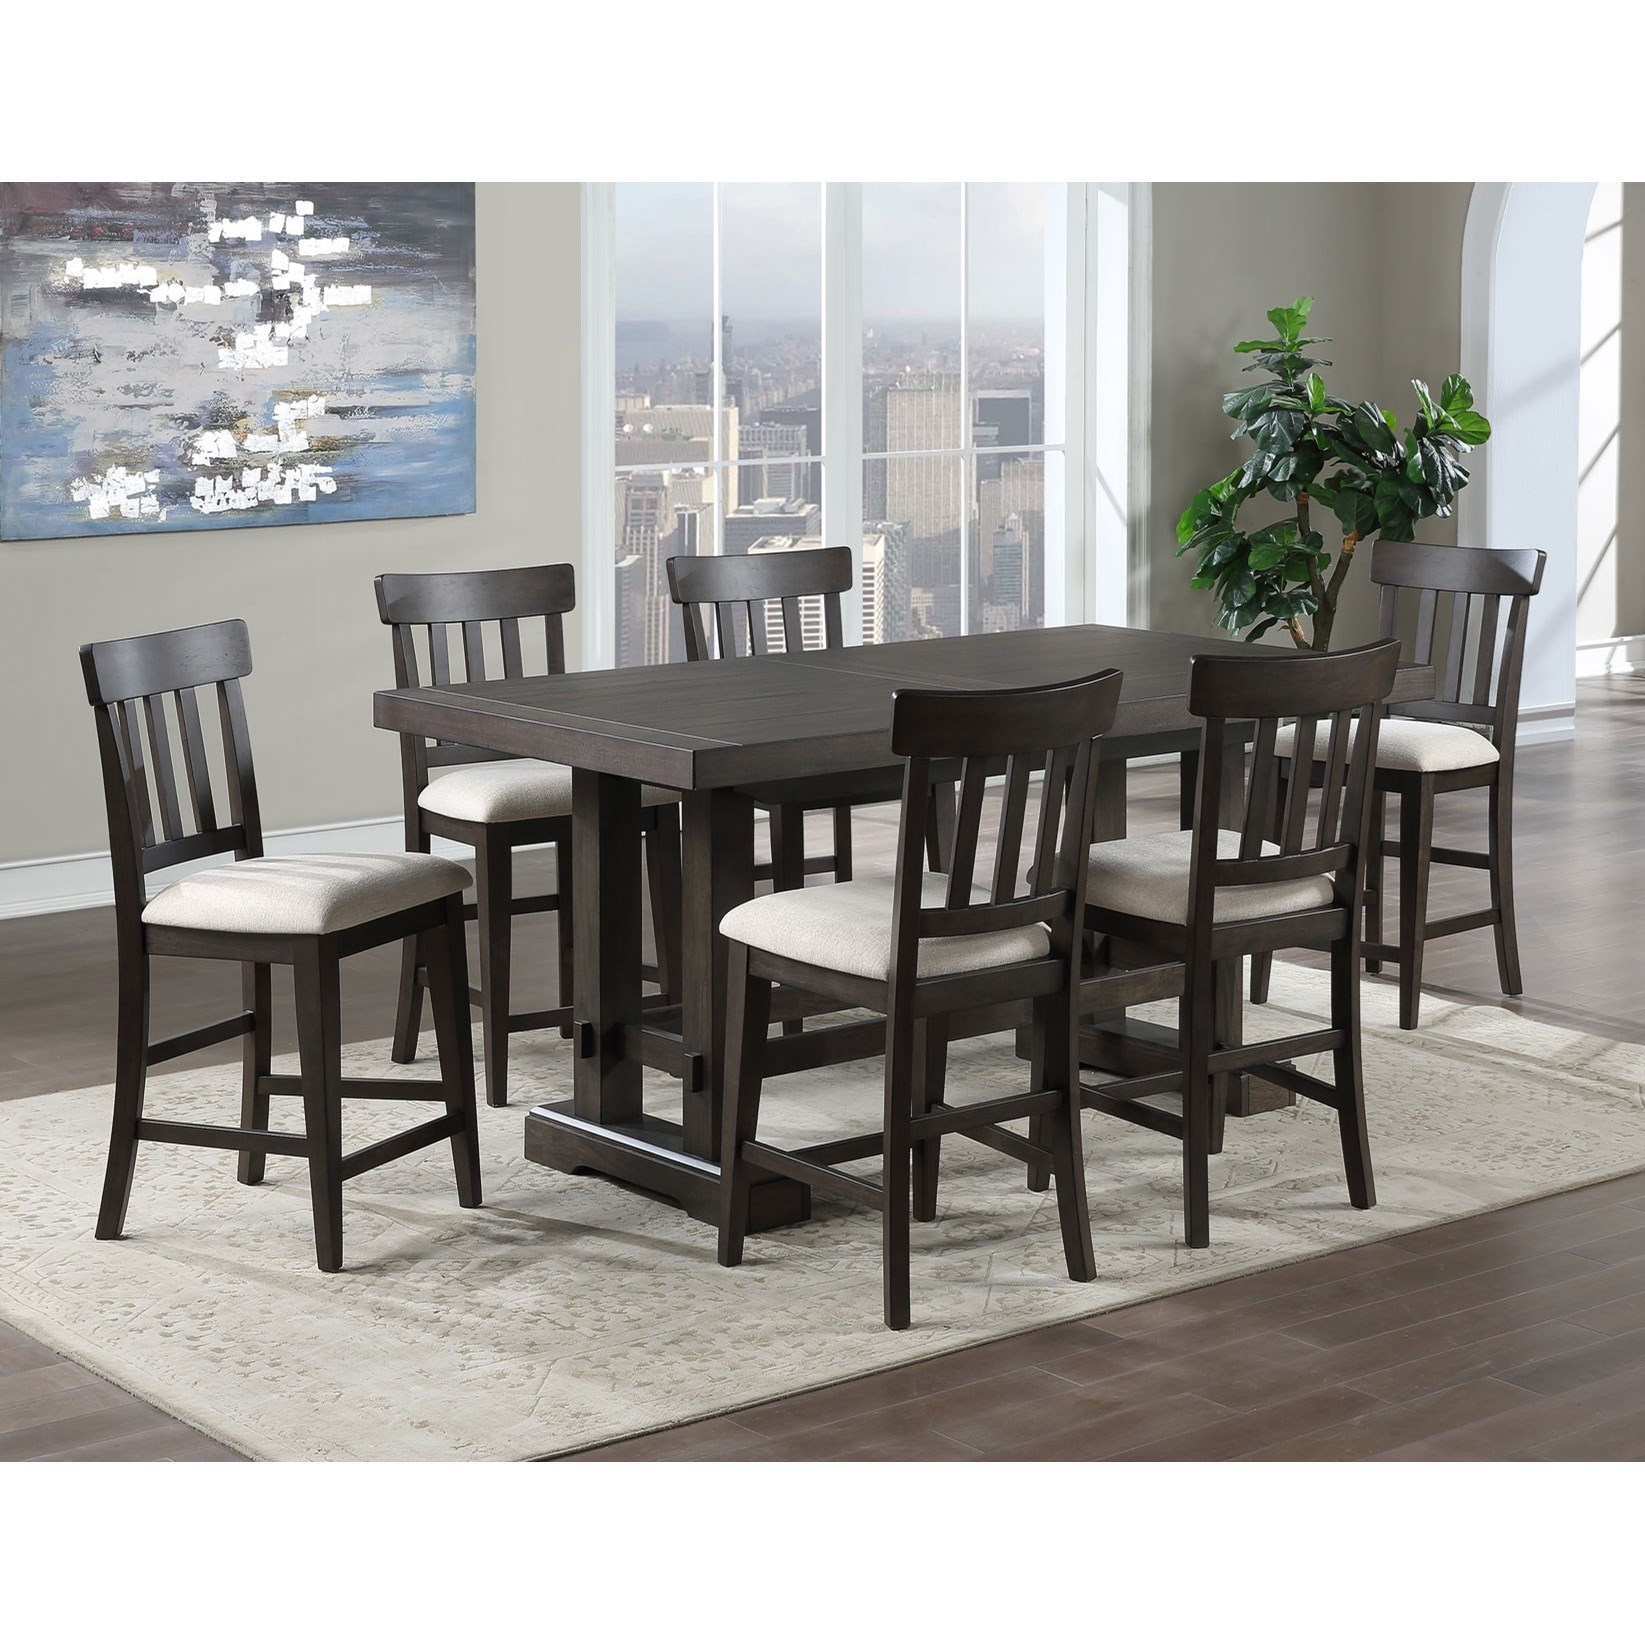 Contemporary 7-Piece Counter Height Dining Set with Leaves